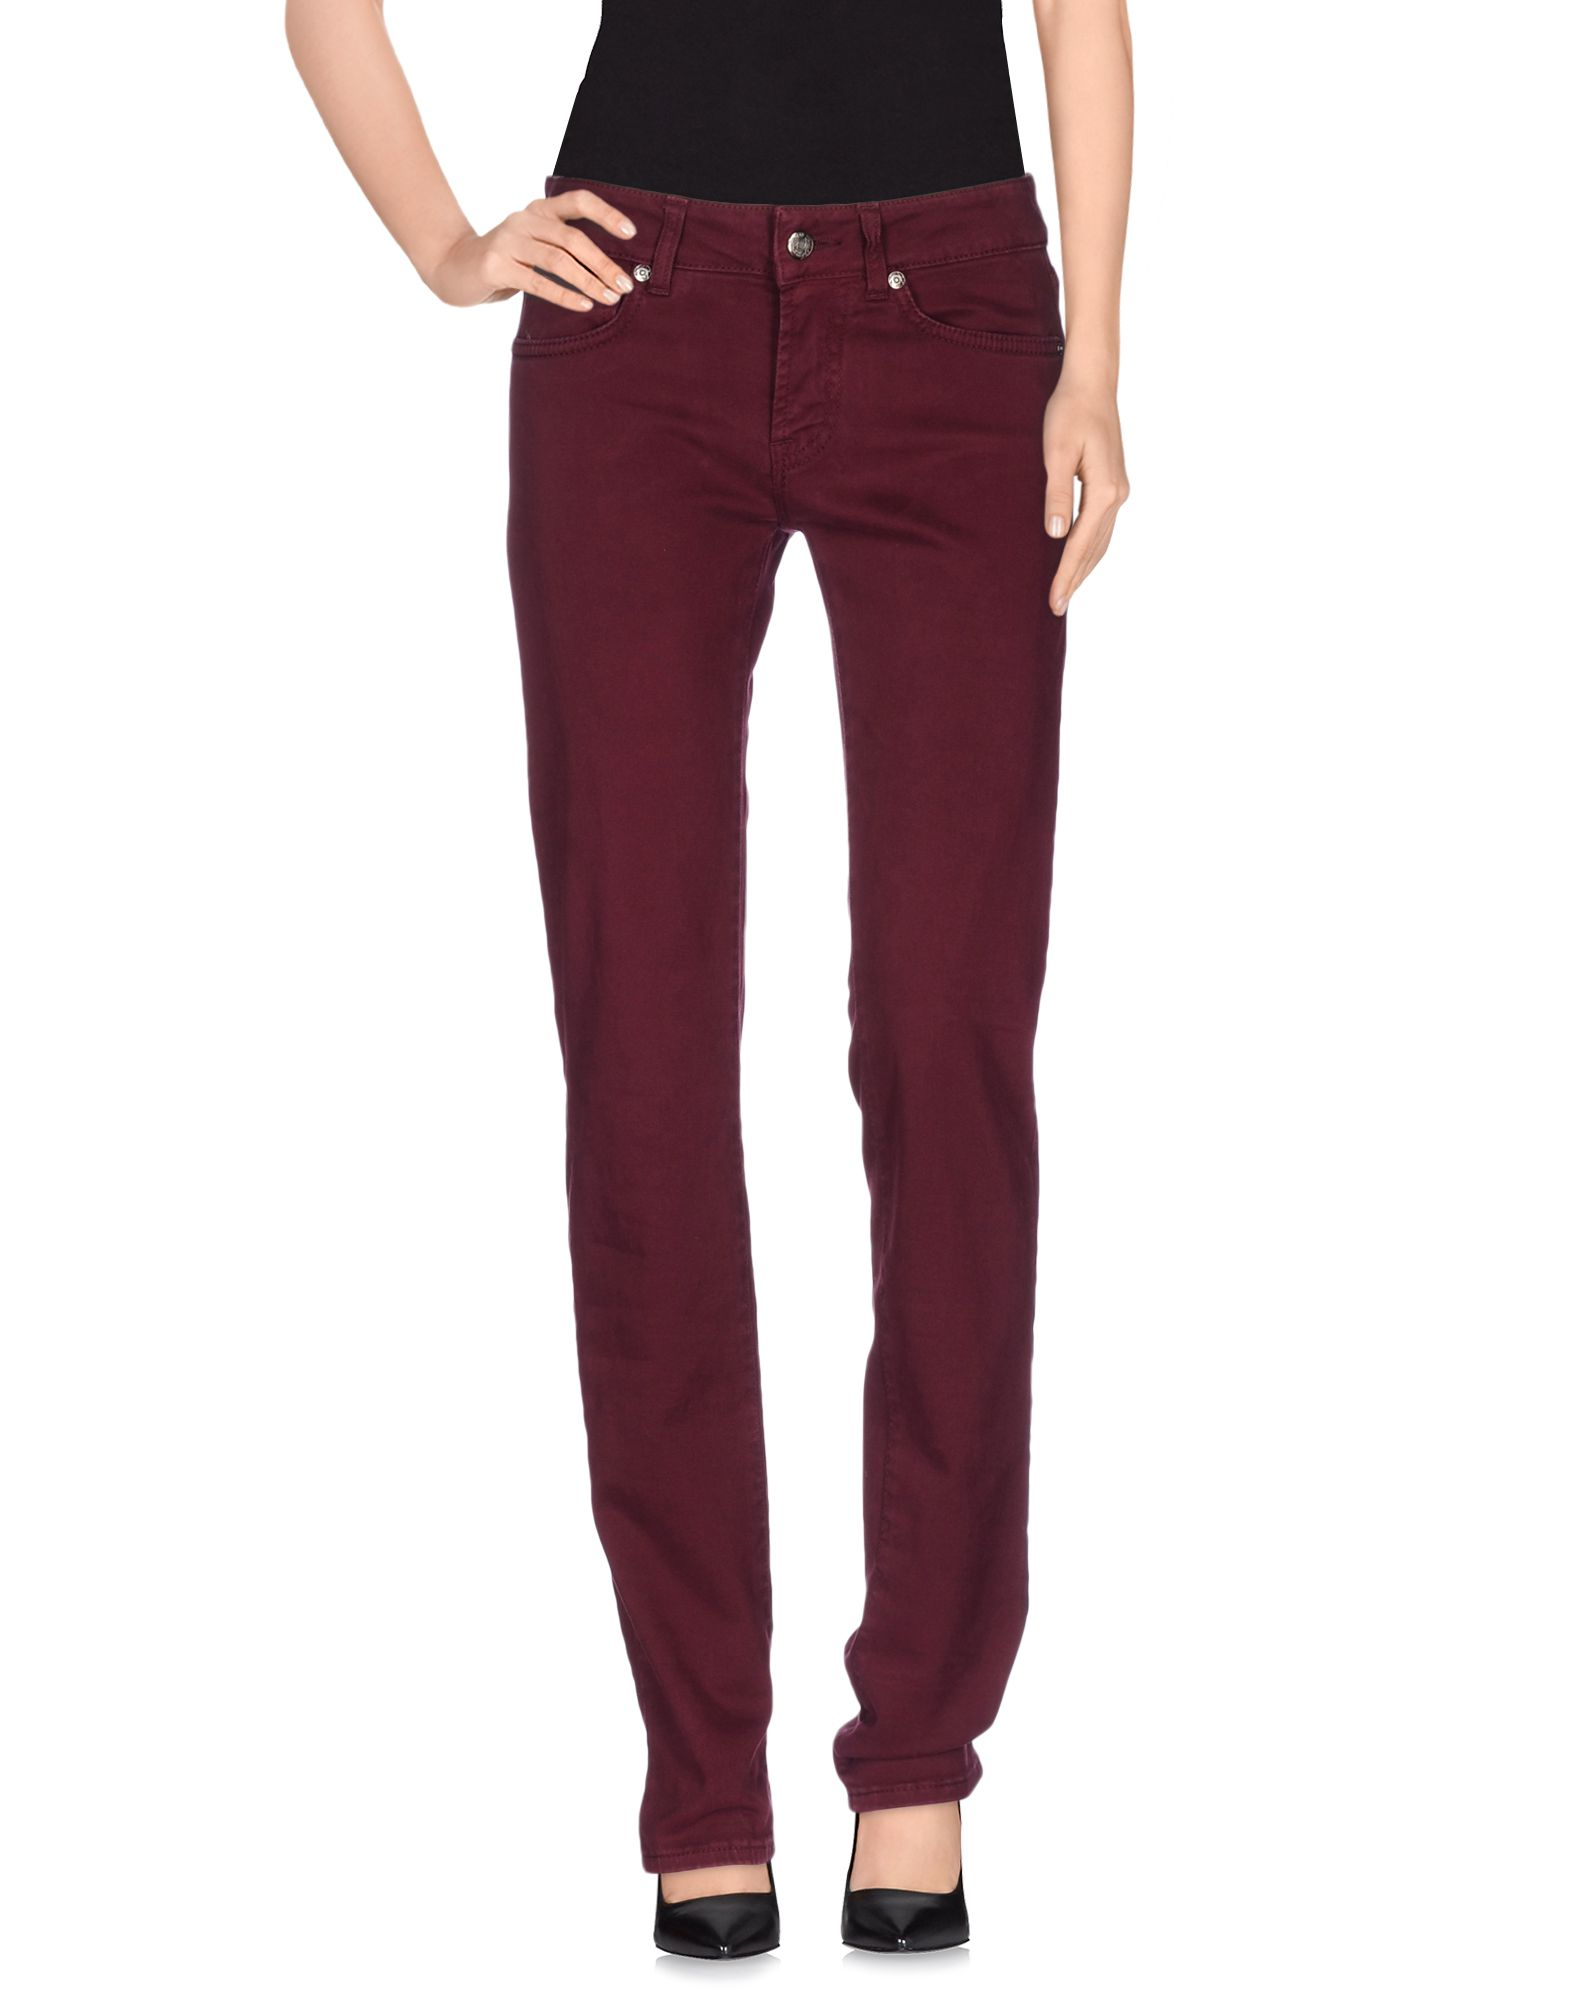 Unique Womens Burgundy Red Waistband Elastic Skinny Cotton Pants Trousers